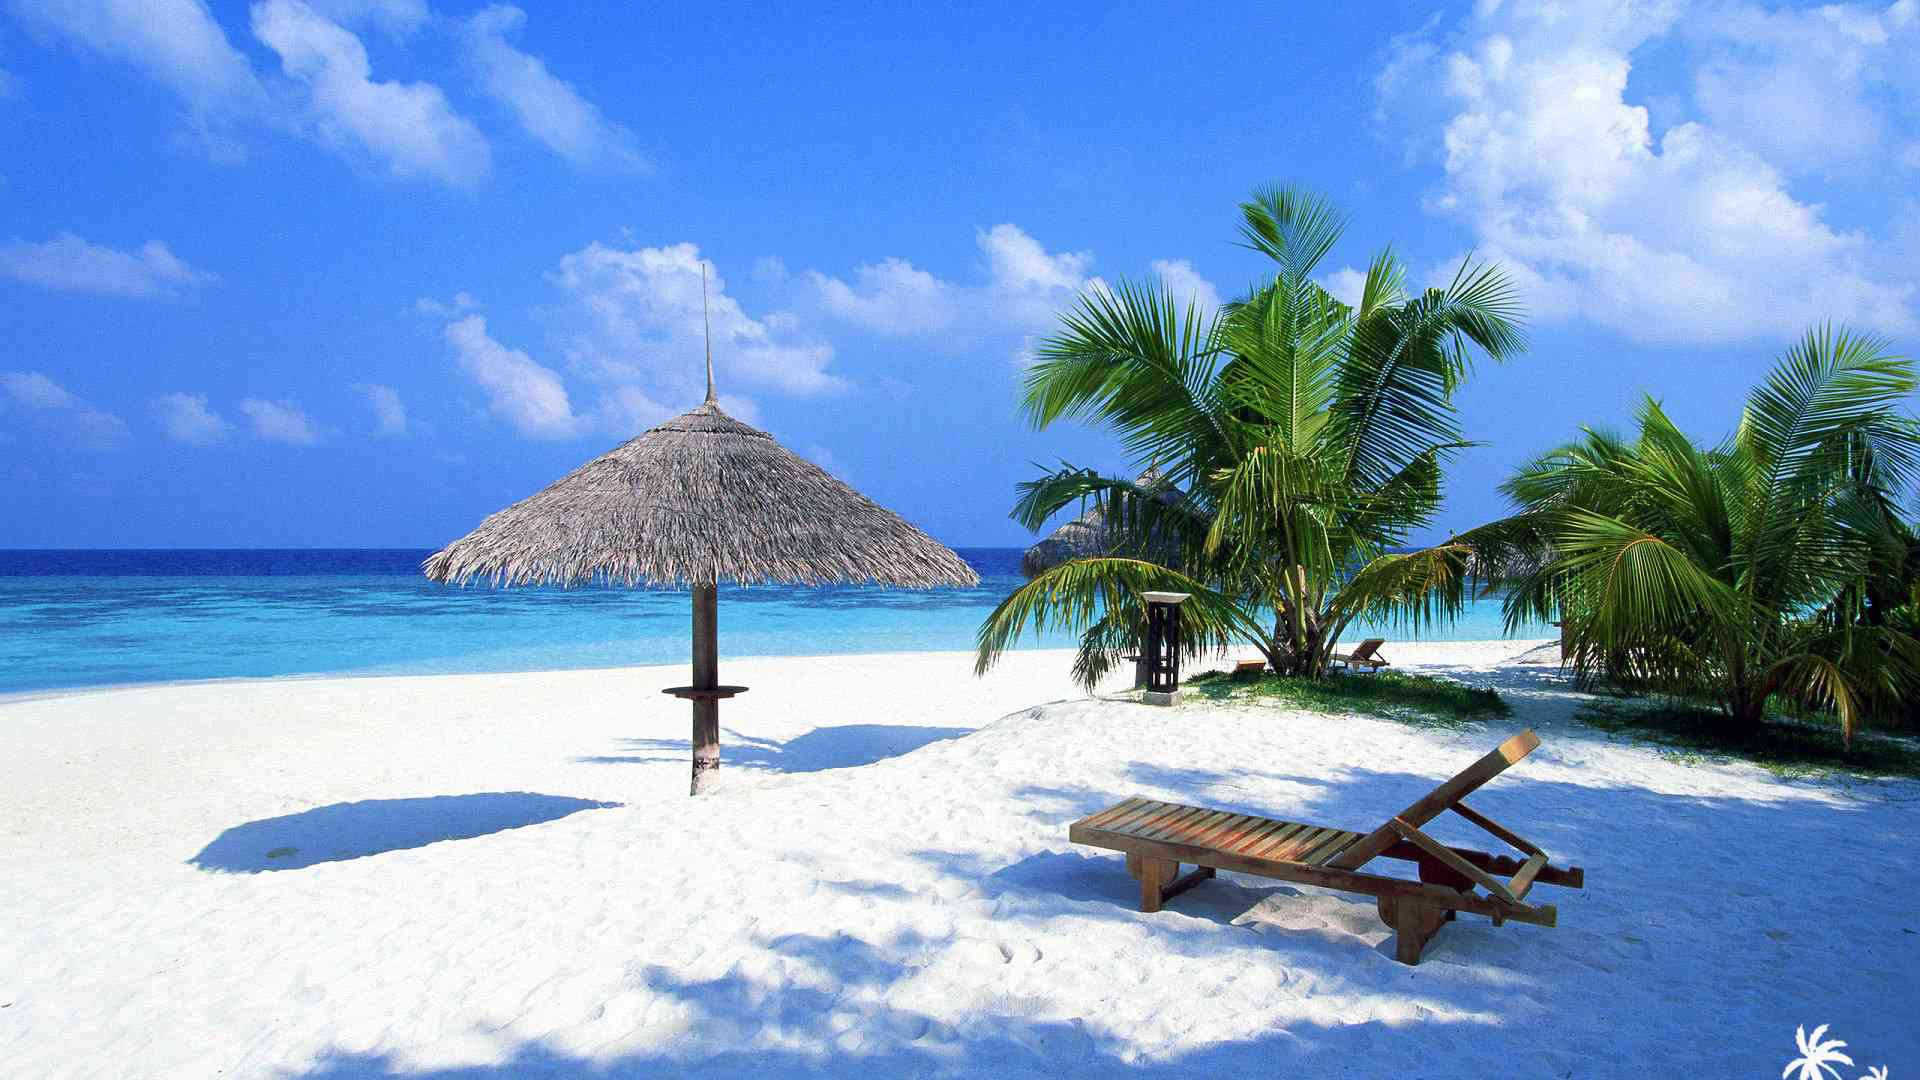 The 13 Best Beach Background Wallpapers of 2019 1920x1080